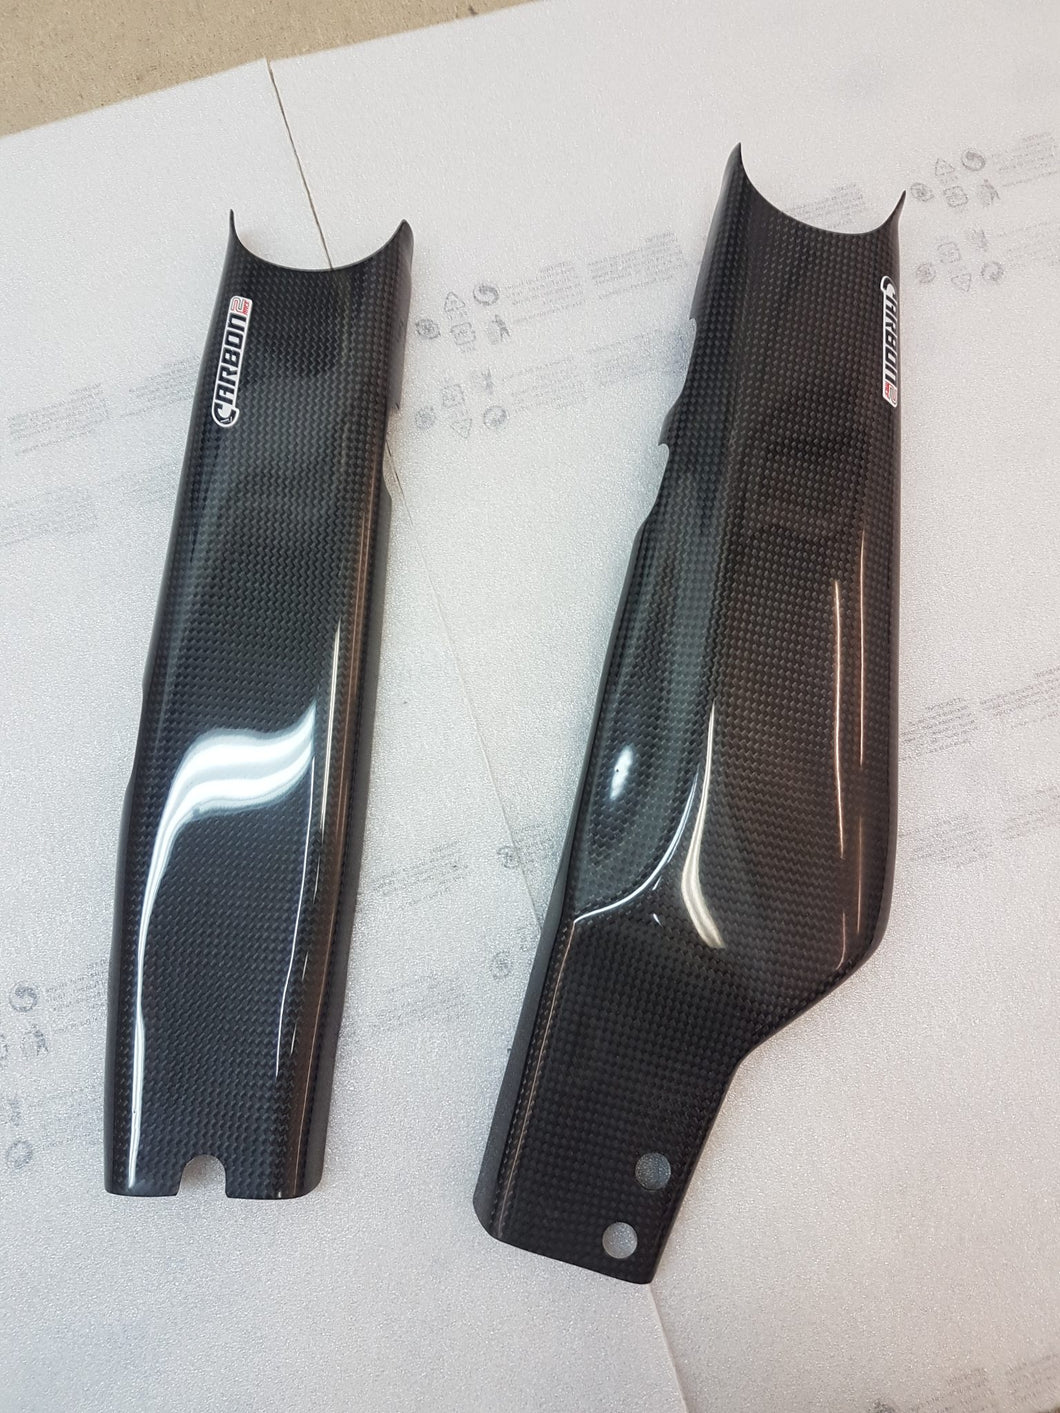 CARBON2RACE KAWASAKI Z1000SX / NINJA 1000 2011-2019 CARBON FIBER SWINGARM COVERS